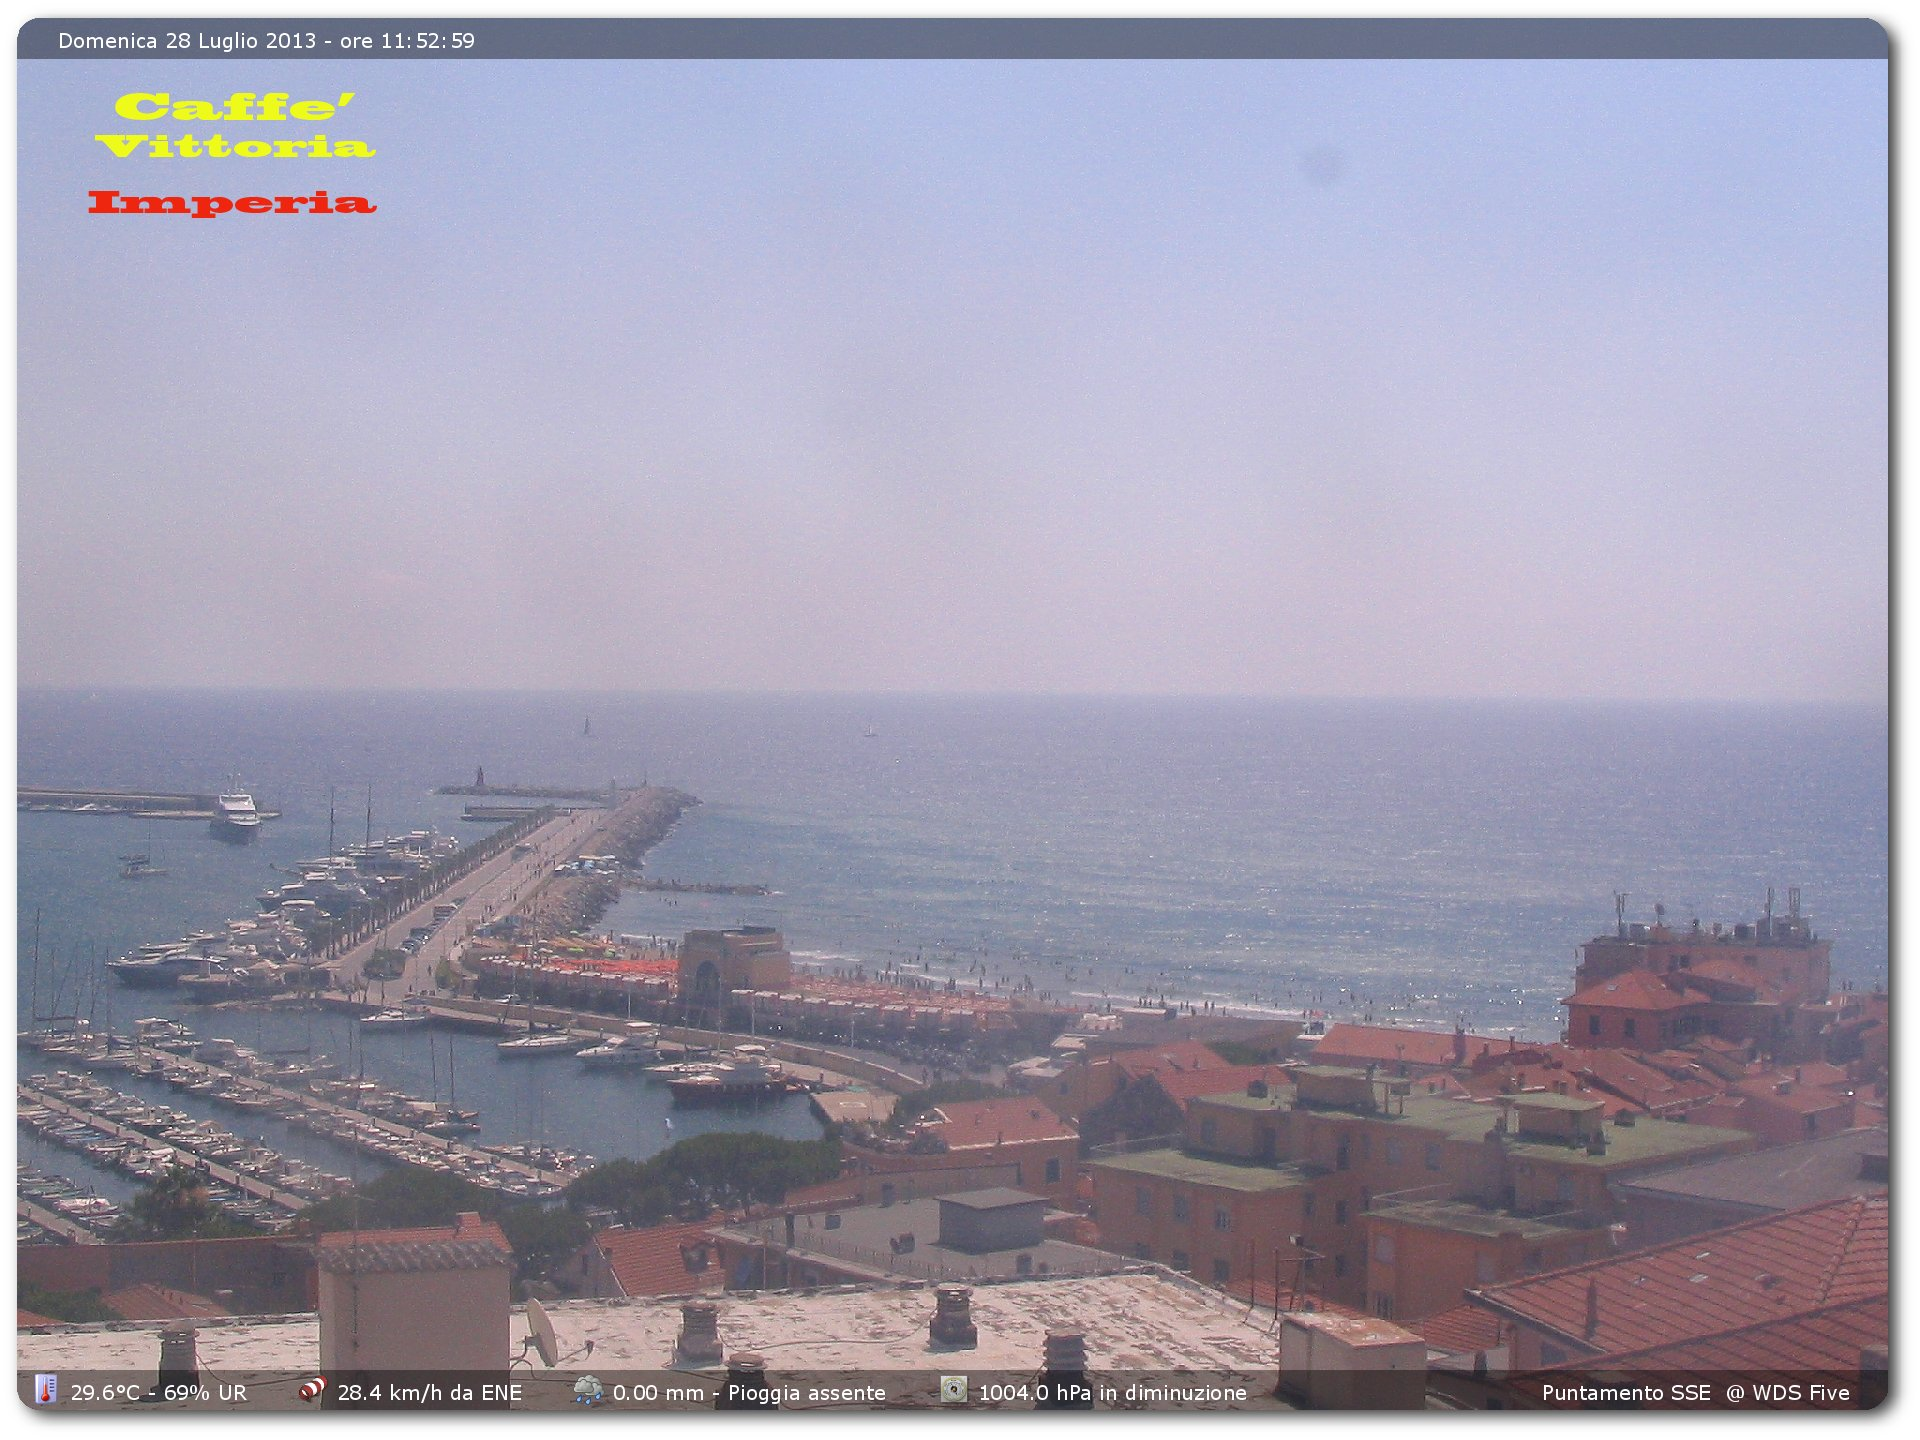 Webcam Imperia - Meteoimperia